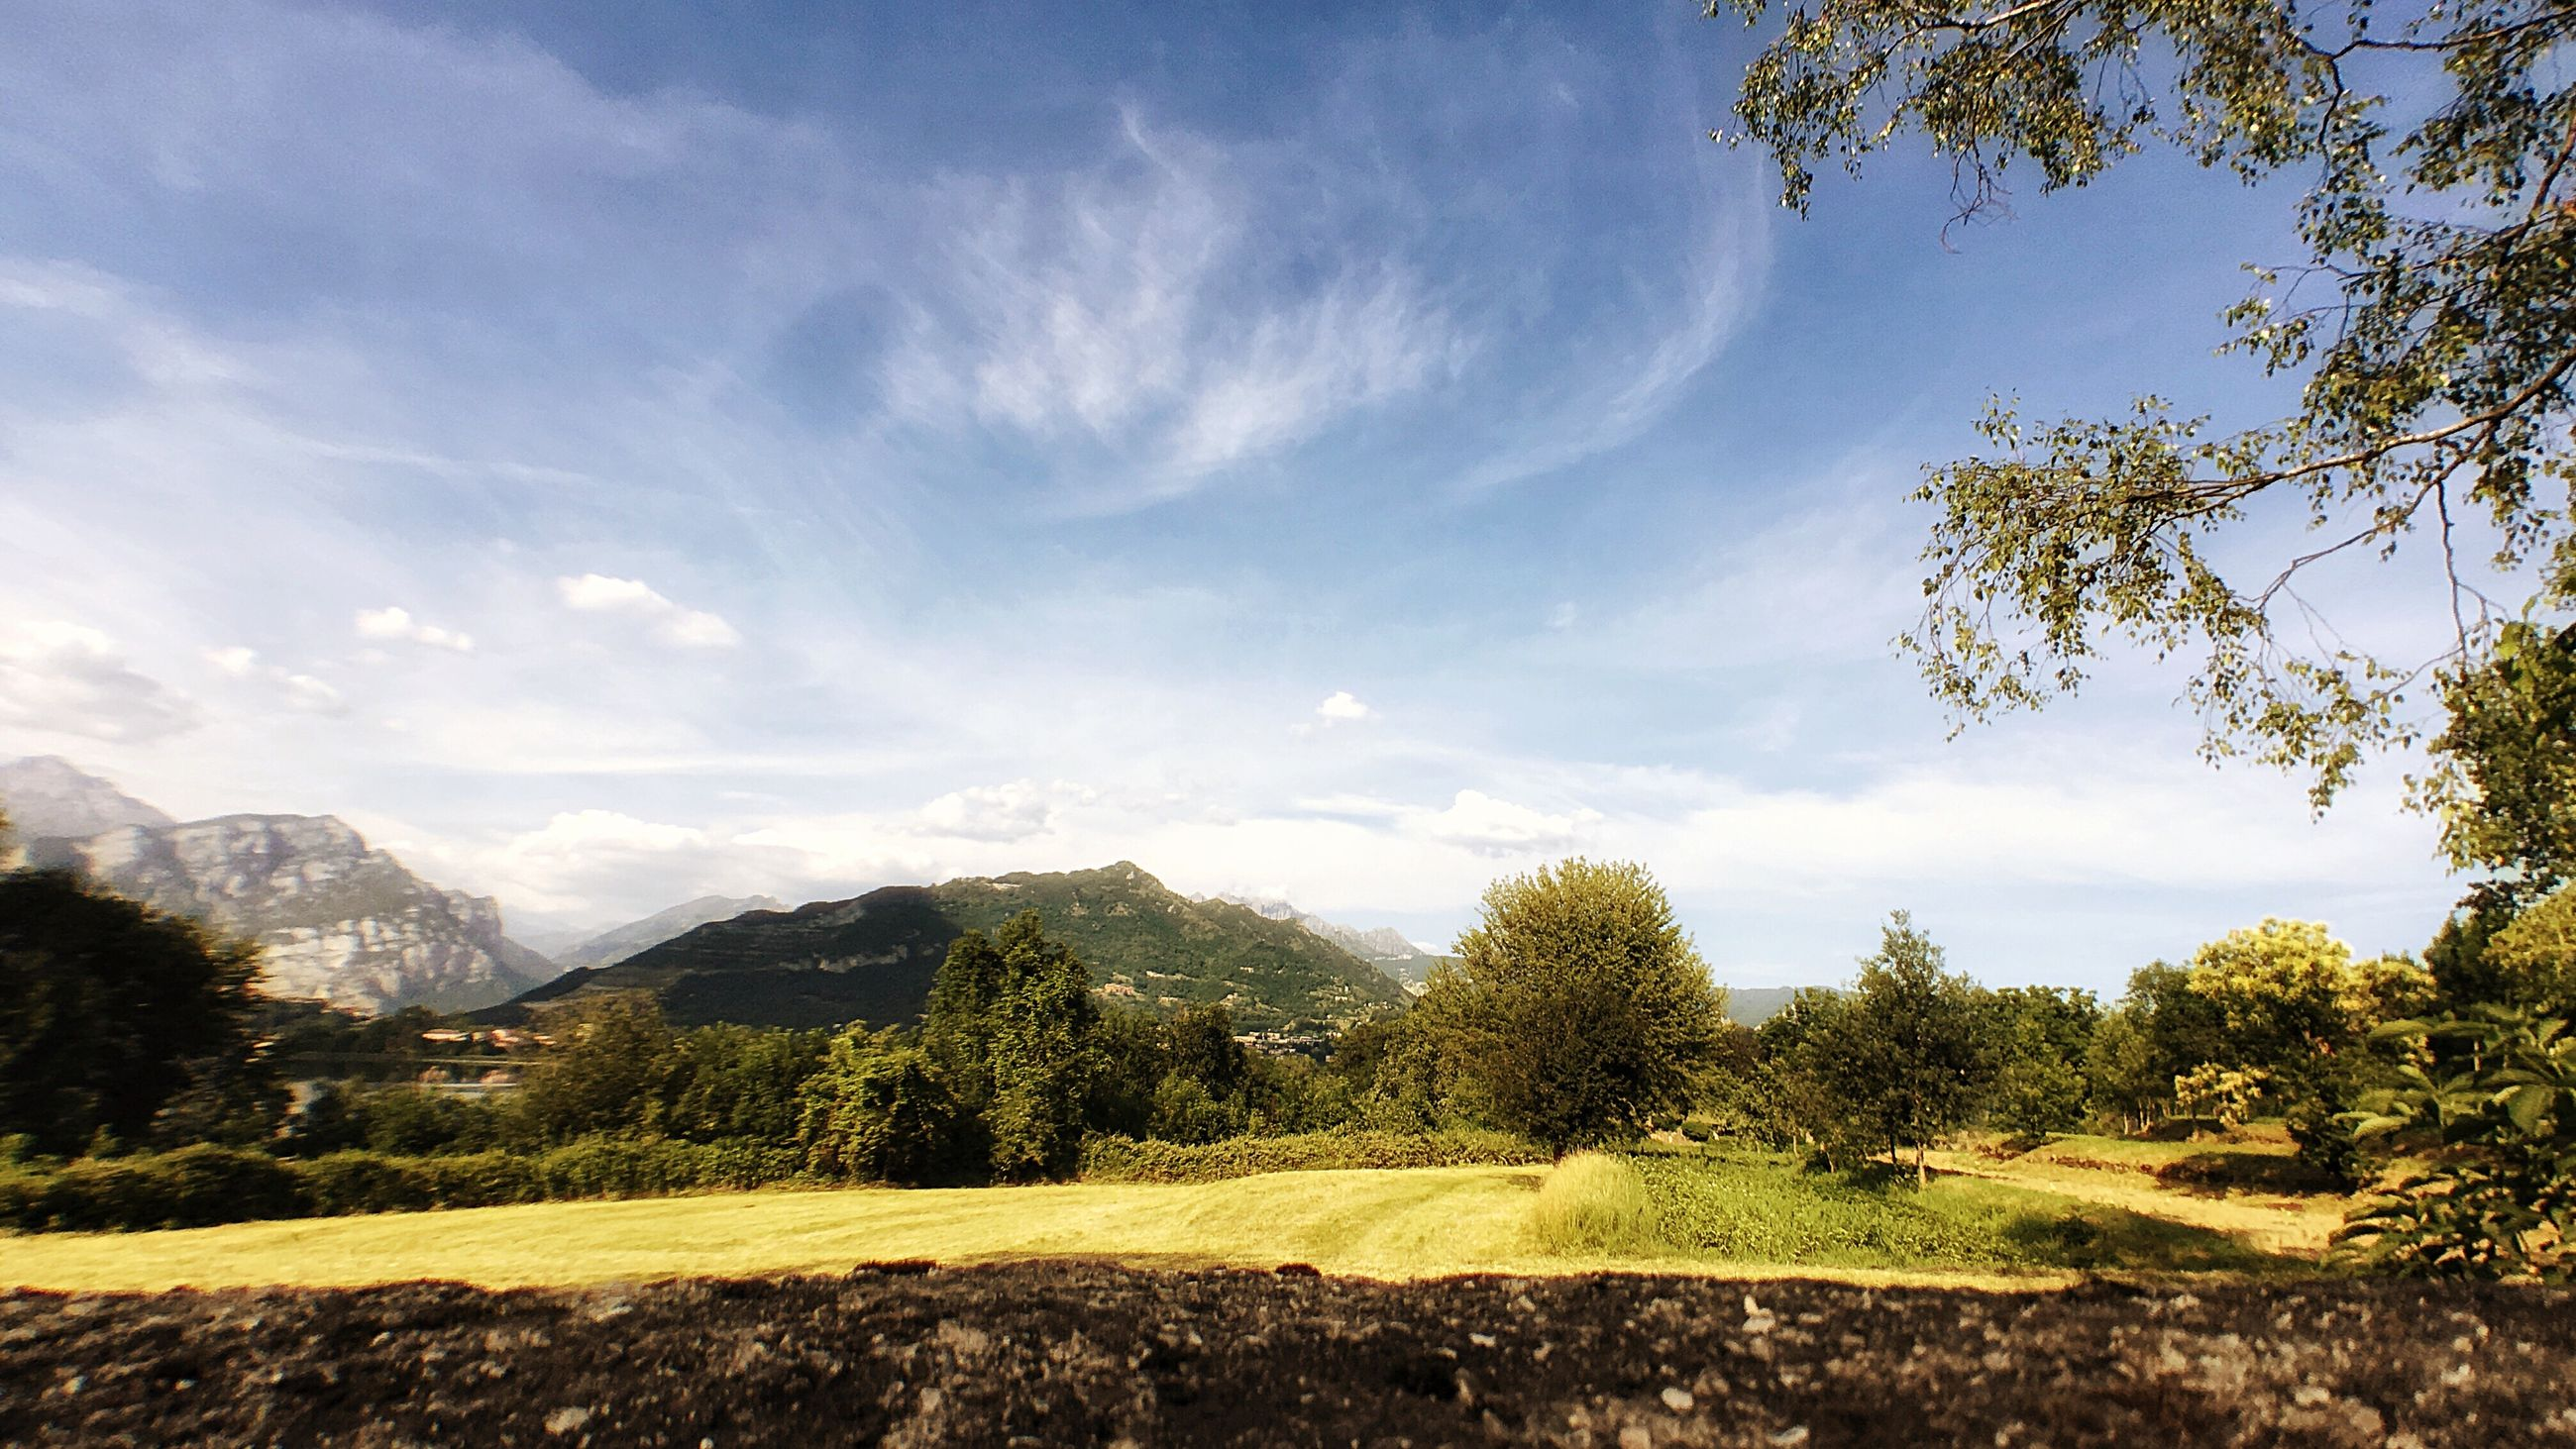 tree, sky, landscape, beauty in nature, nature, scenics, tranquil scene, tranquility, no people, day, mountain, outdoors